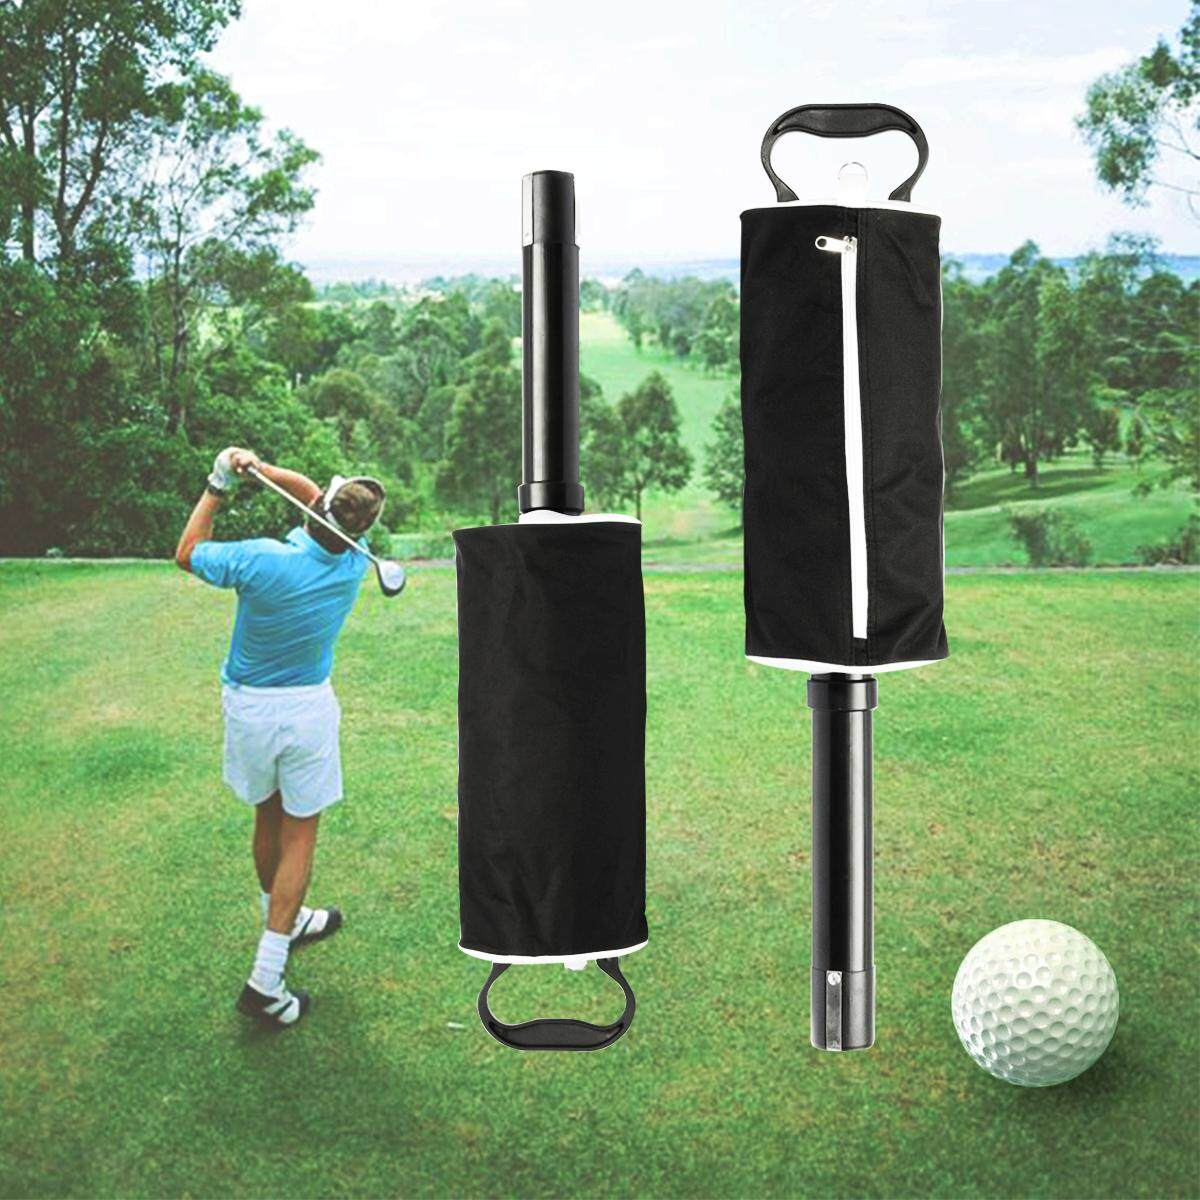 【free Shipping + Flash Deal】black Golf Ball Pick Up Zipper Shag Bag With Handle Retriever Collector Storage By Audew.